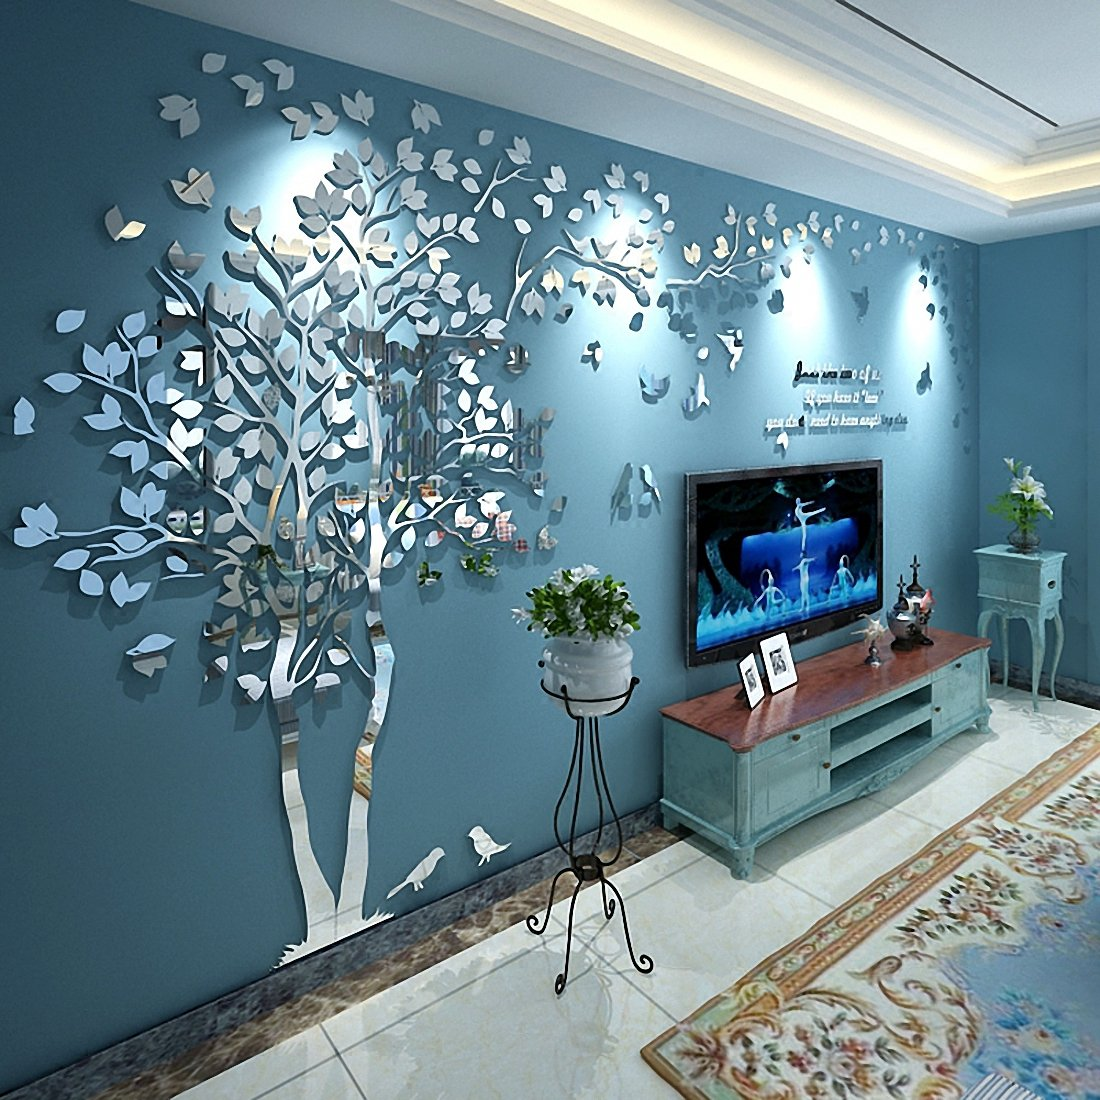 N.SunForest 3D Crystal Acrylic Couple Tree Wall Stickers Silver Self-Adhesive DIY Wall Murals Home Decor Art - X-Large